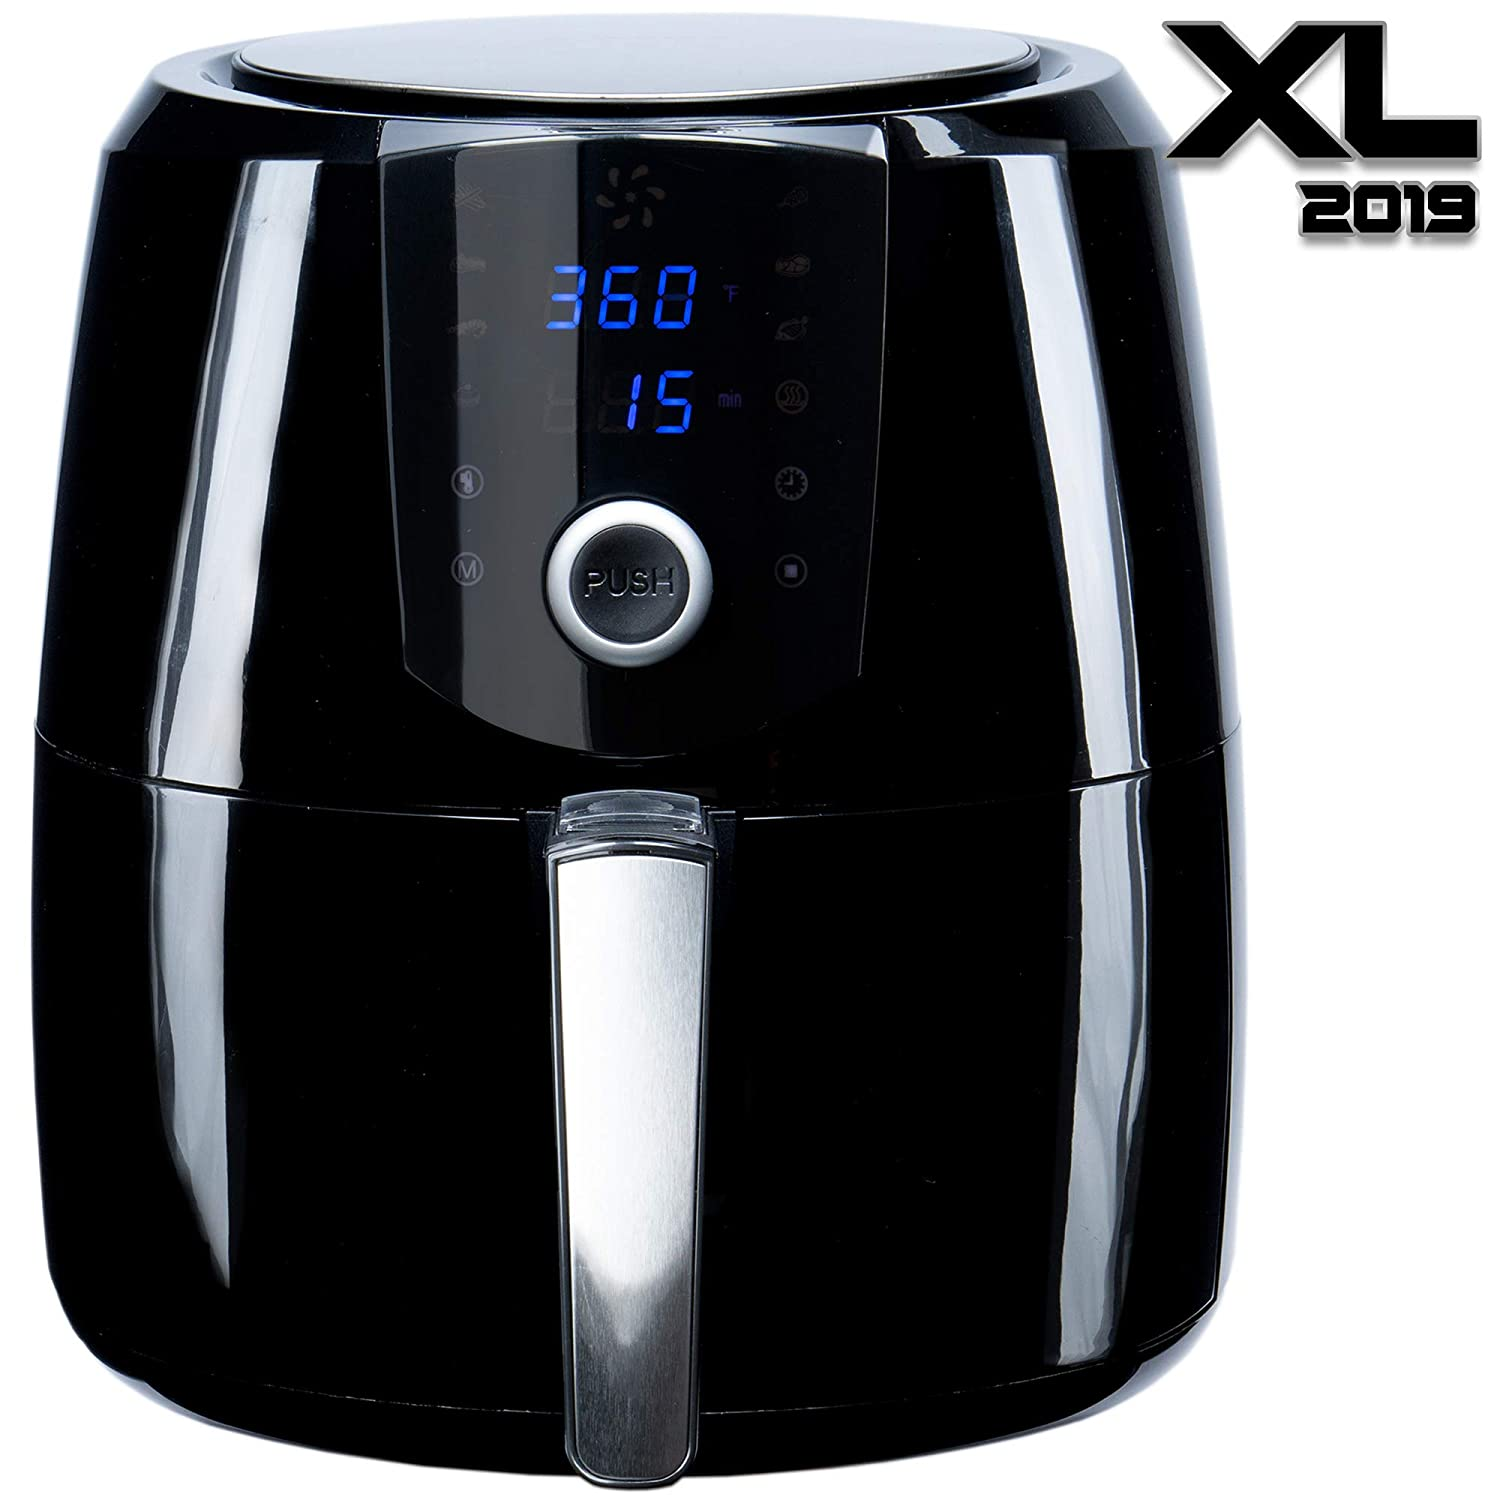 [2019] Air Fryer XL 5.5 QT Extreme Model 8-in-1 By (B. WEISS) Family Size Huge capacity,With Airfryer accessories; PIZZA Pan, (50 Recipes Cook Book),Toaster rack, Cooking Divider. XXL